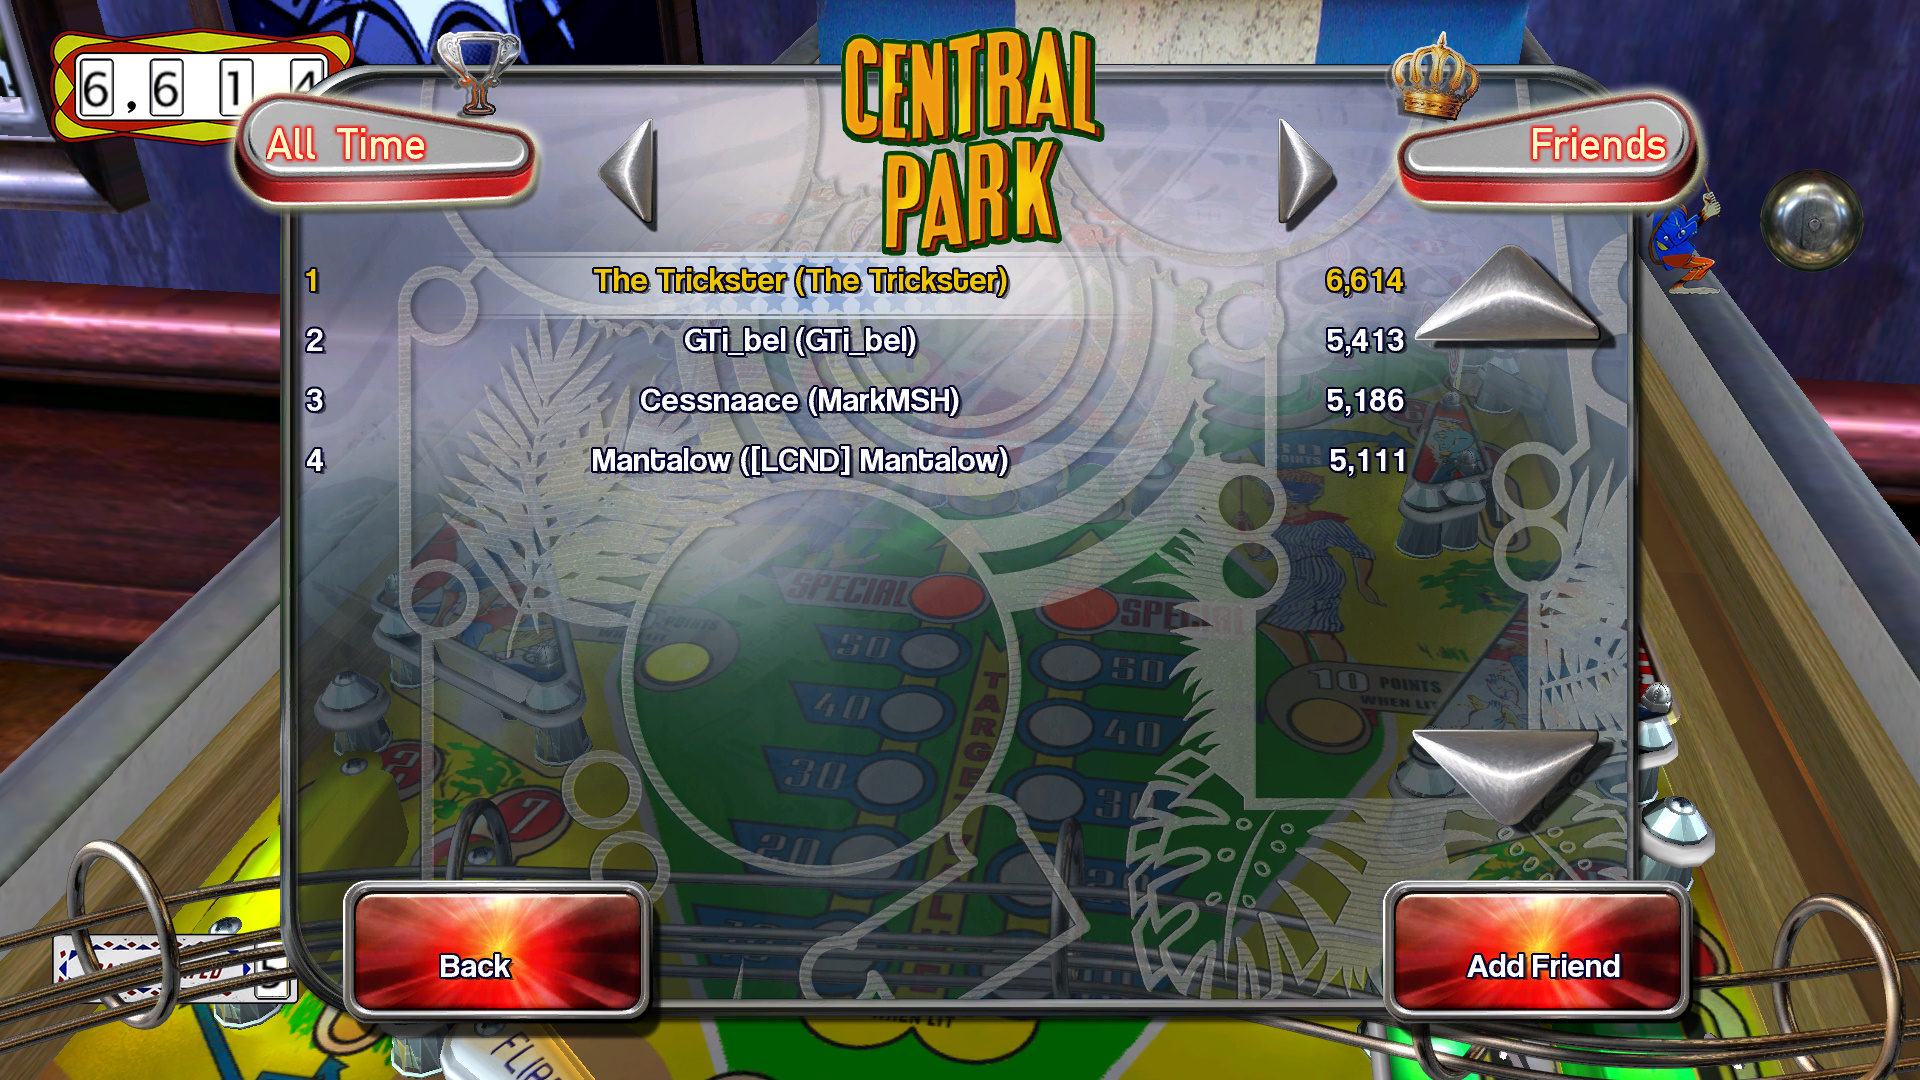 TheTrickster: Pinball Arcade: Central Park (PC) 6,614 points on 2015-09-14 08:09:21